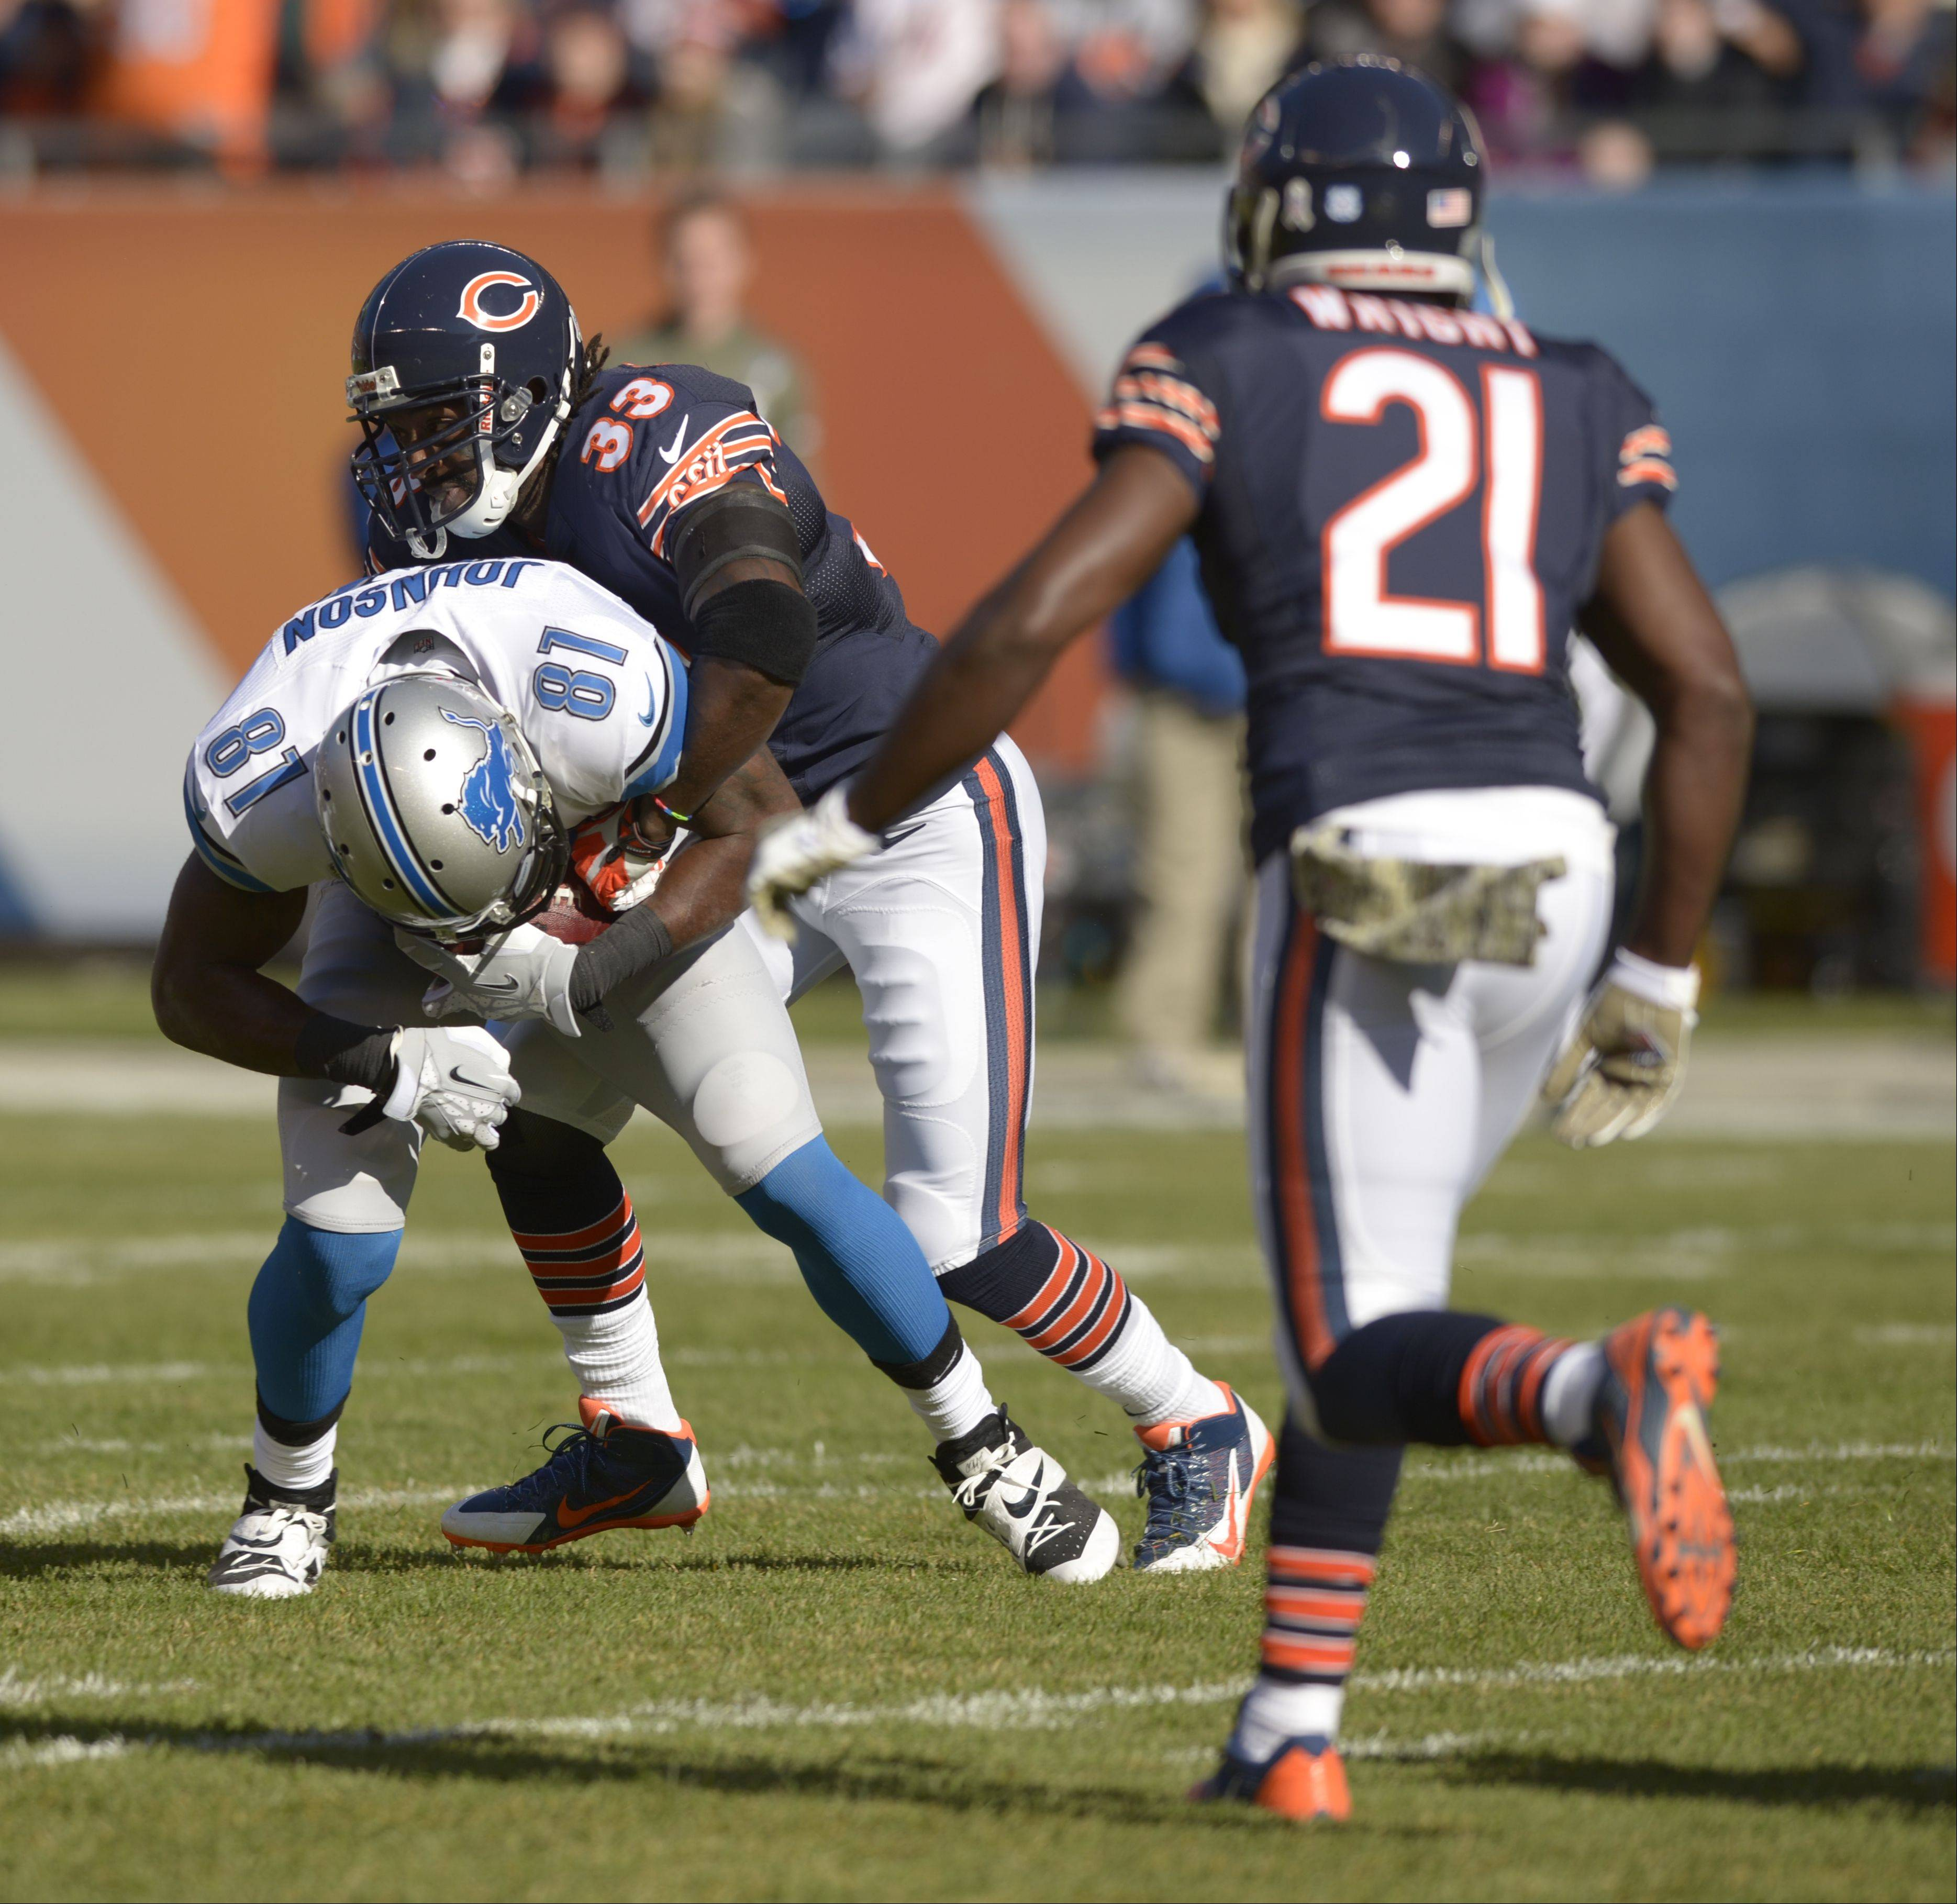 Detroit Lions wide receiver Calvin Johnson is taken down by Bears cornerback Charles Tillman during the Bears 21-19 loss to the Detroit Lions at Soldier Field, Sunday. Tillman injured a triceps in the game and will miss the rest of the regular season.